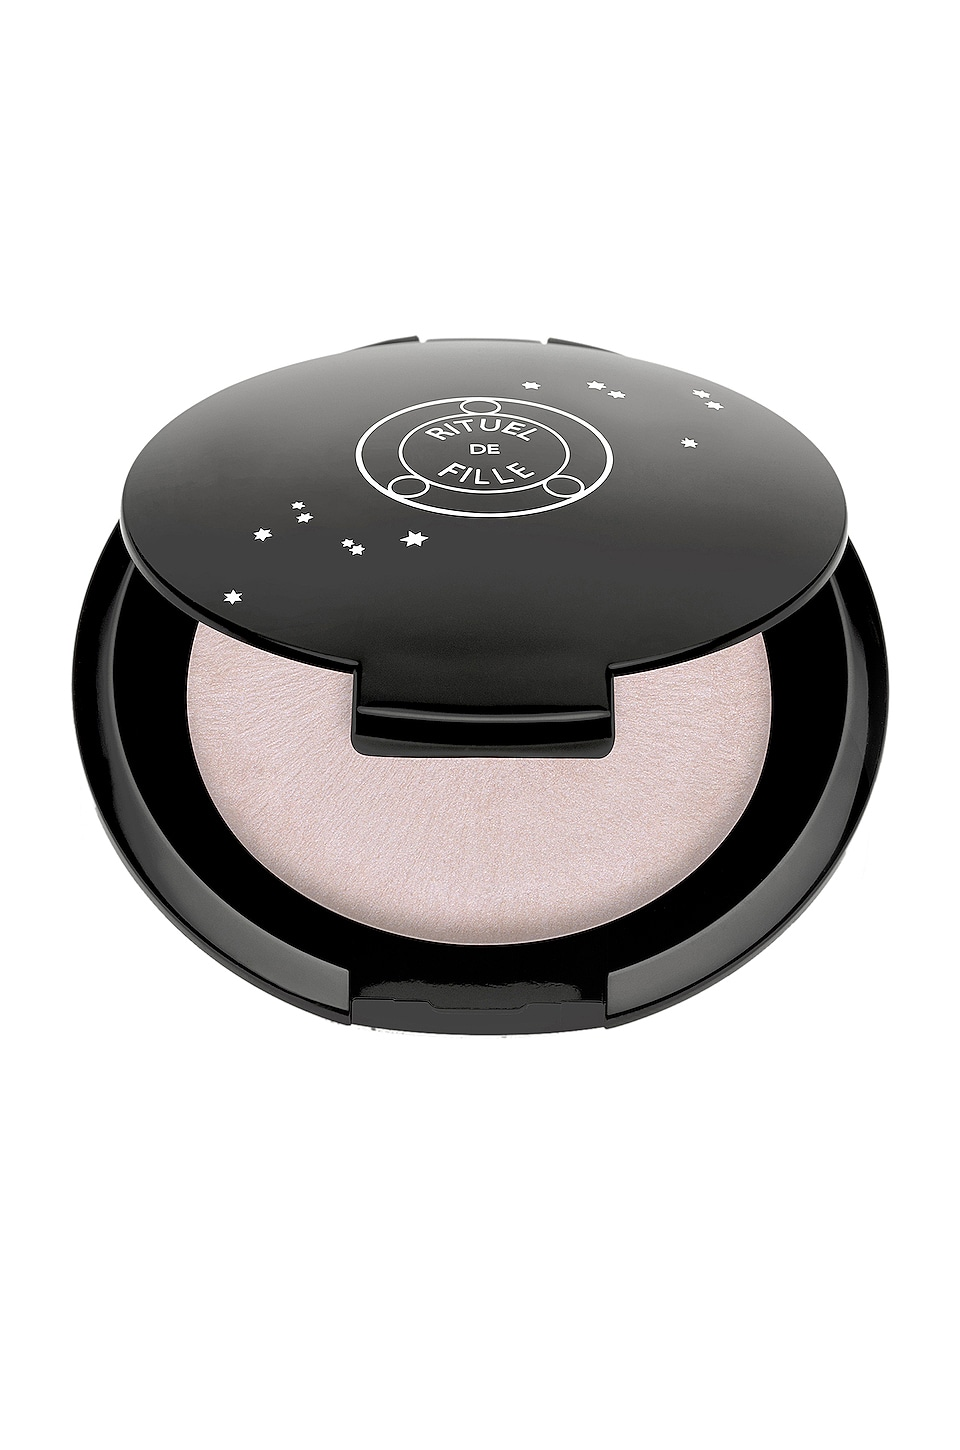 Rituel de Fille Rare Light Luminizer in Ghost Light